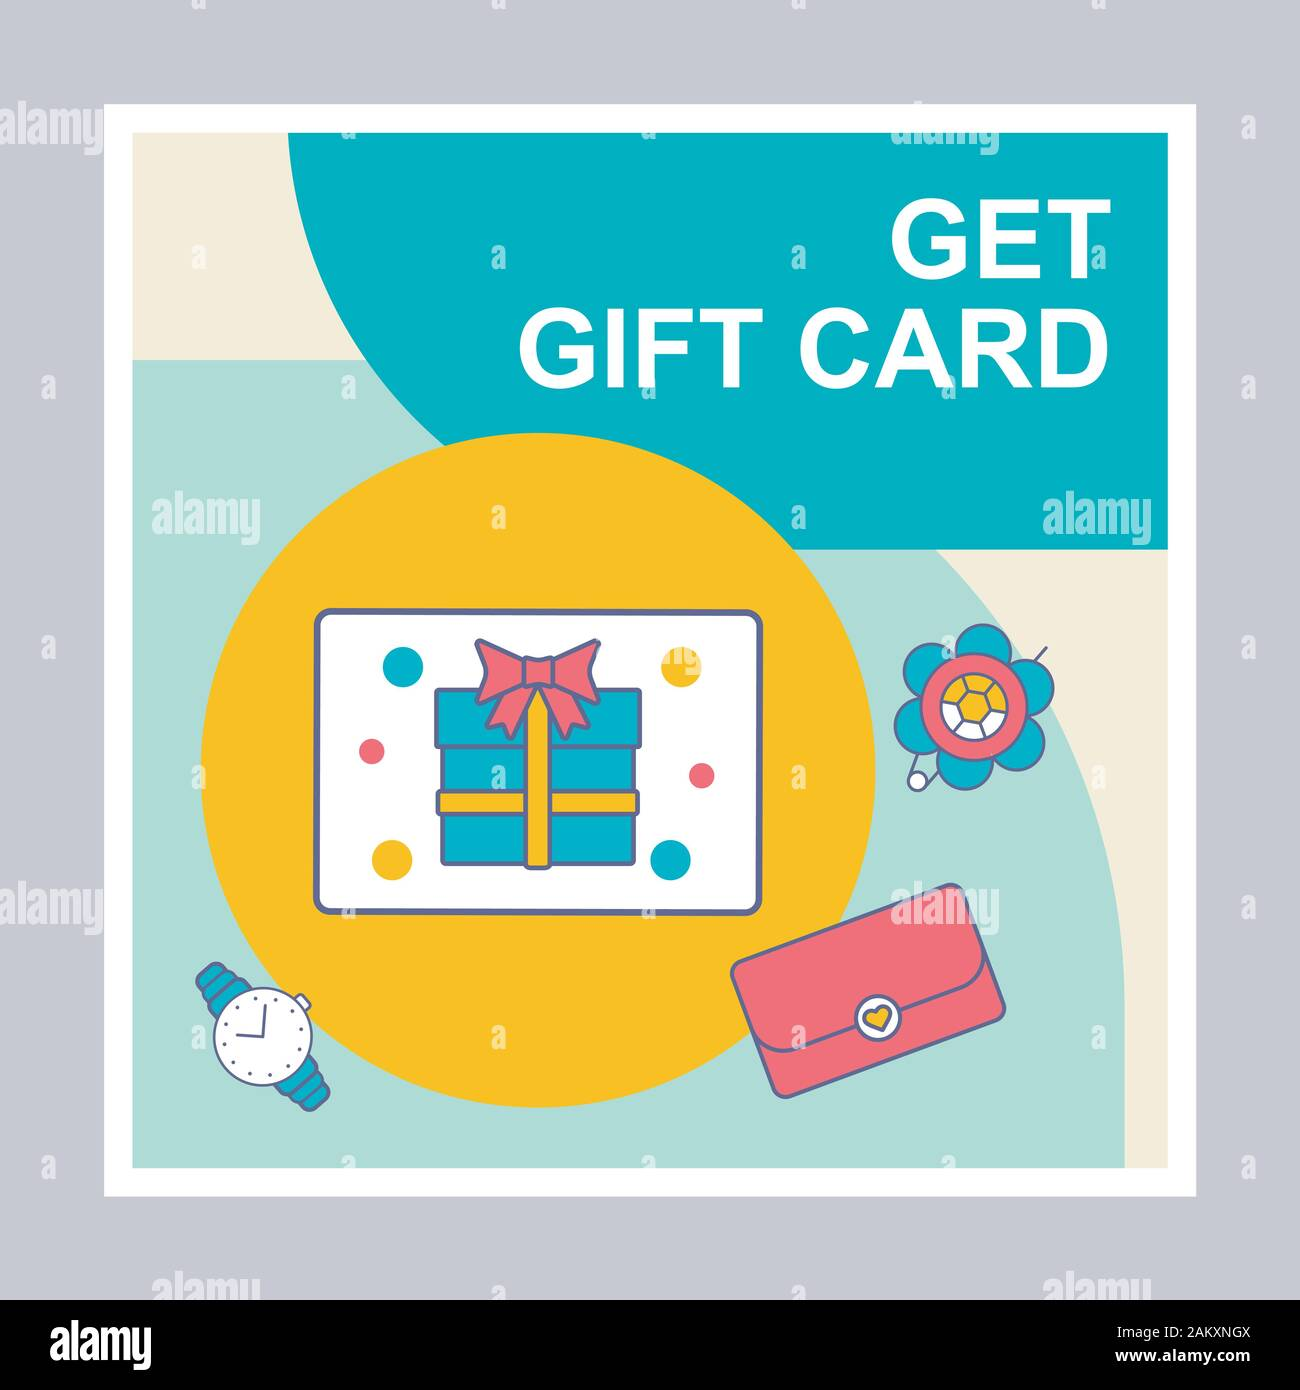 Get Free Gift Card Social Media Posts Mockup Special Offer Advertising Web Banner Design Template Social Media Booster Content Layout Isolated Pr Stock Vector Image Art Alamy